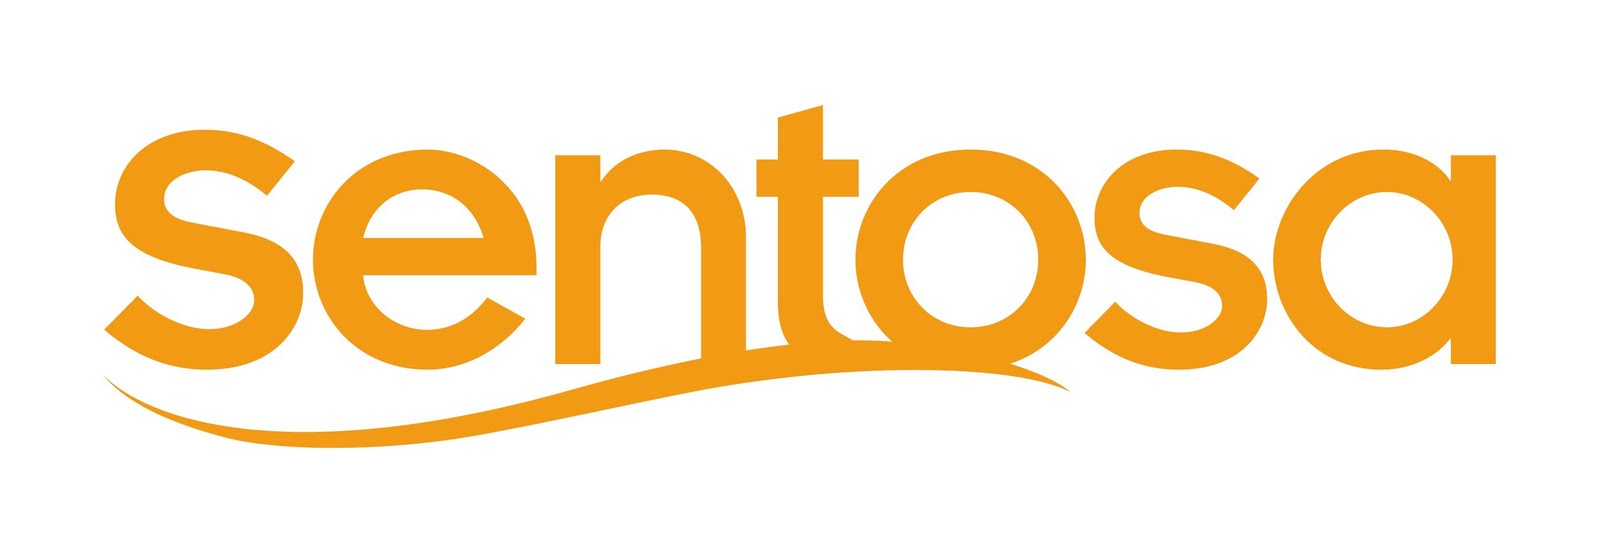 sentosa_logo_final_hi_res_2